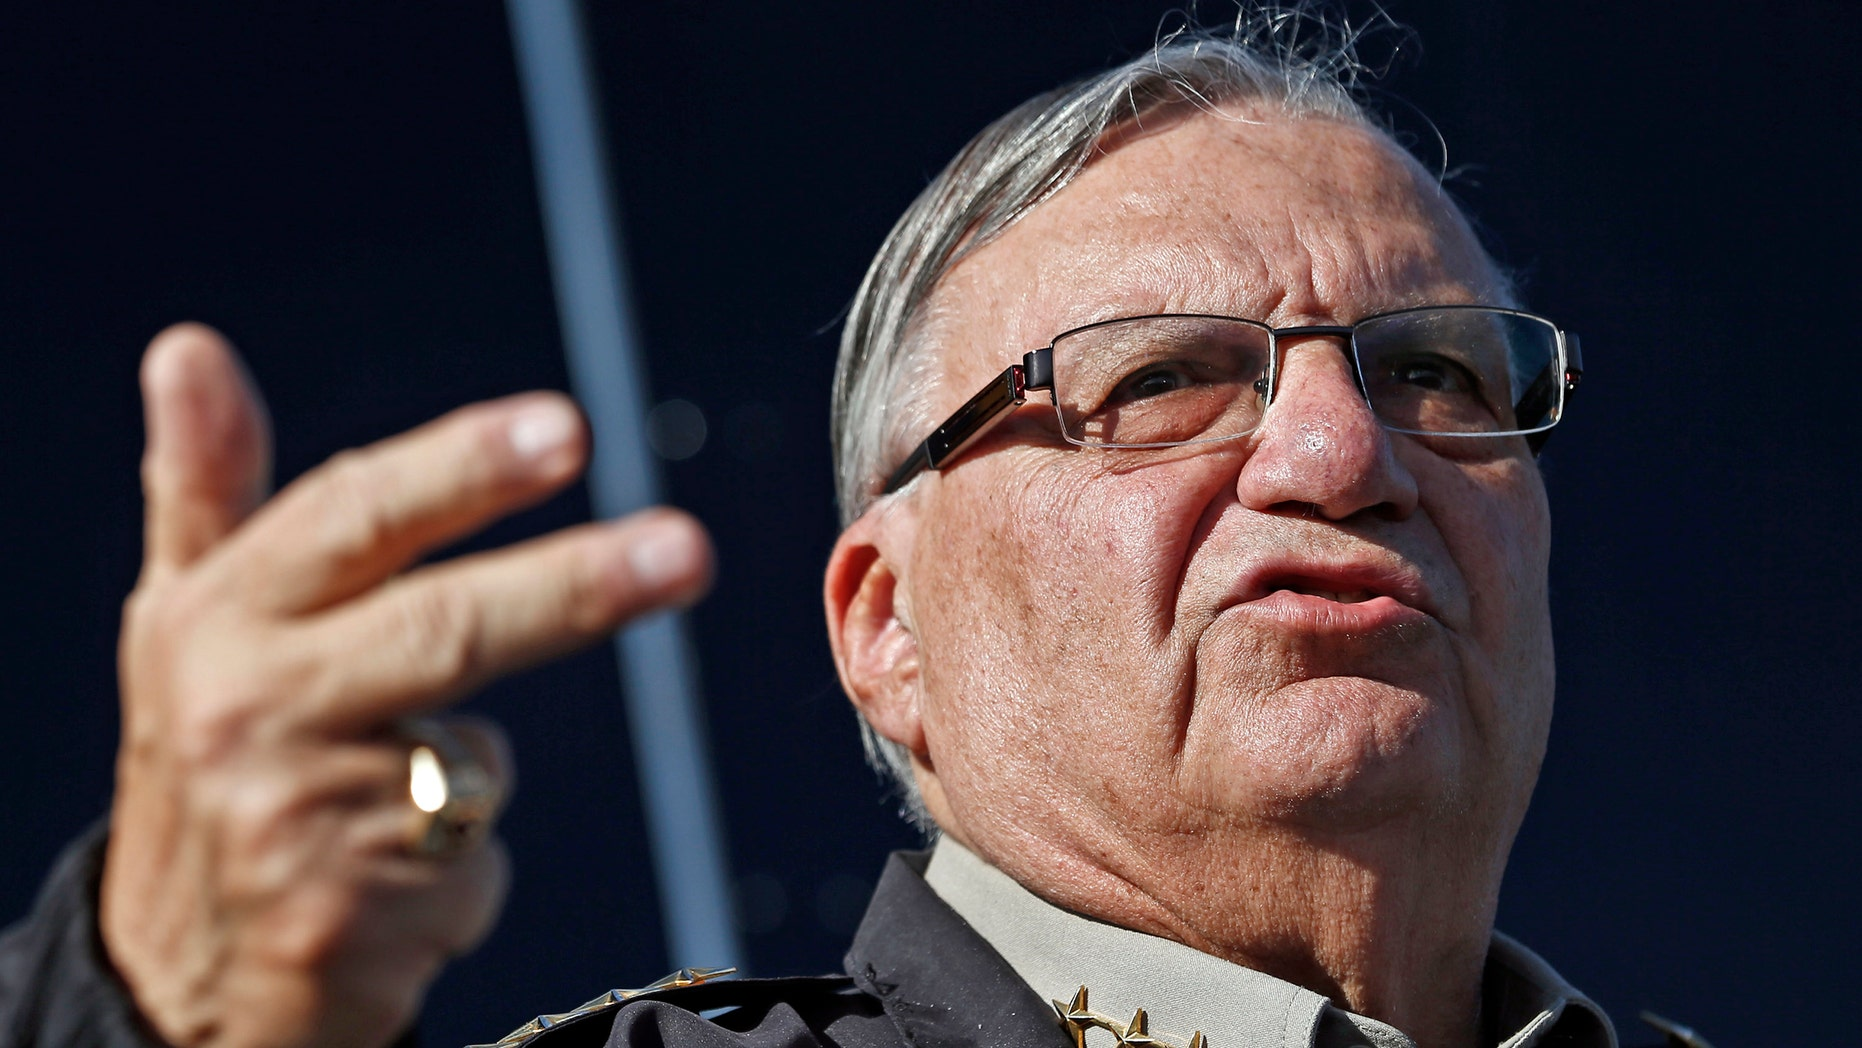 Jan. 9, 2013: Maricopa County Sheriff Joe Arpaio speaks to reporters in Phoenix, Ariz.